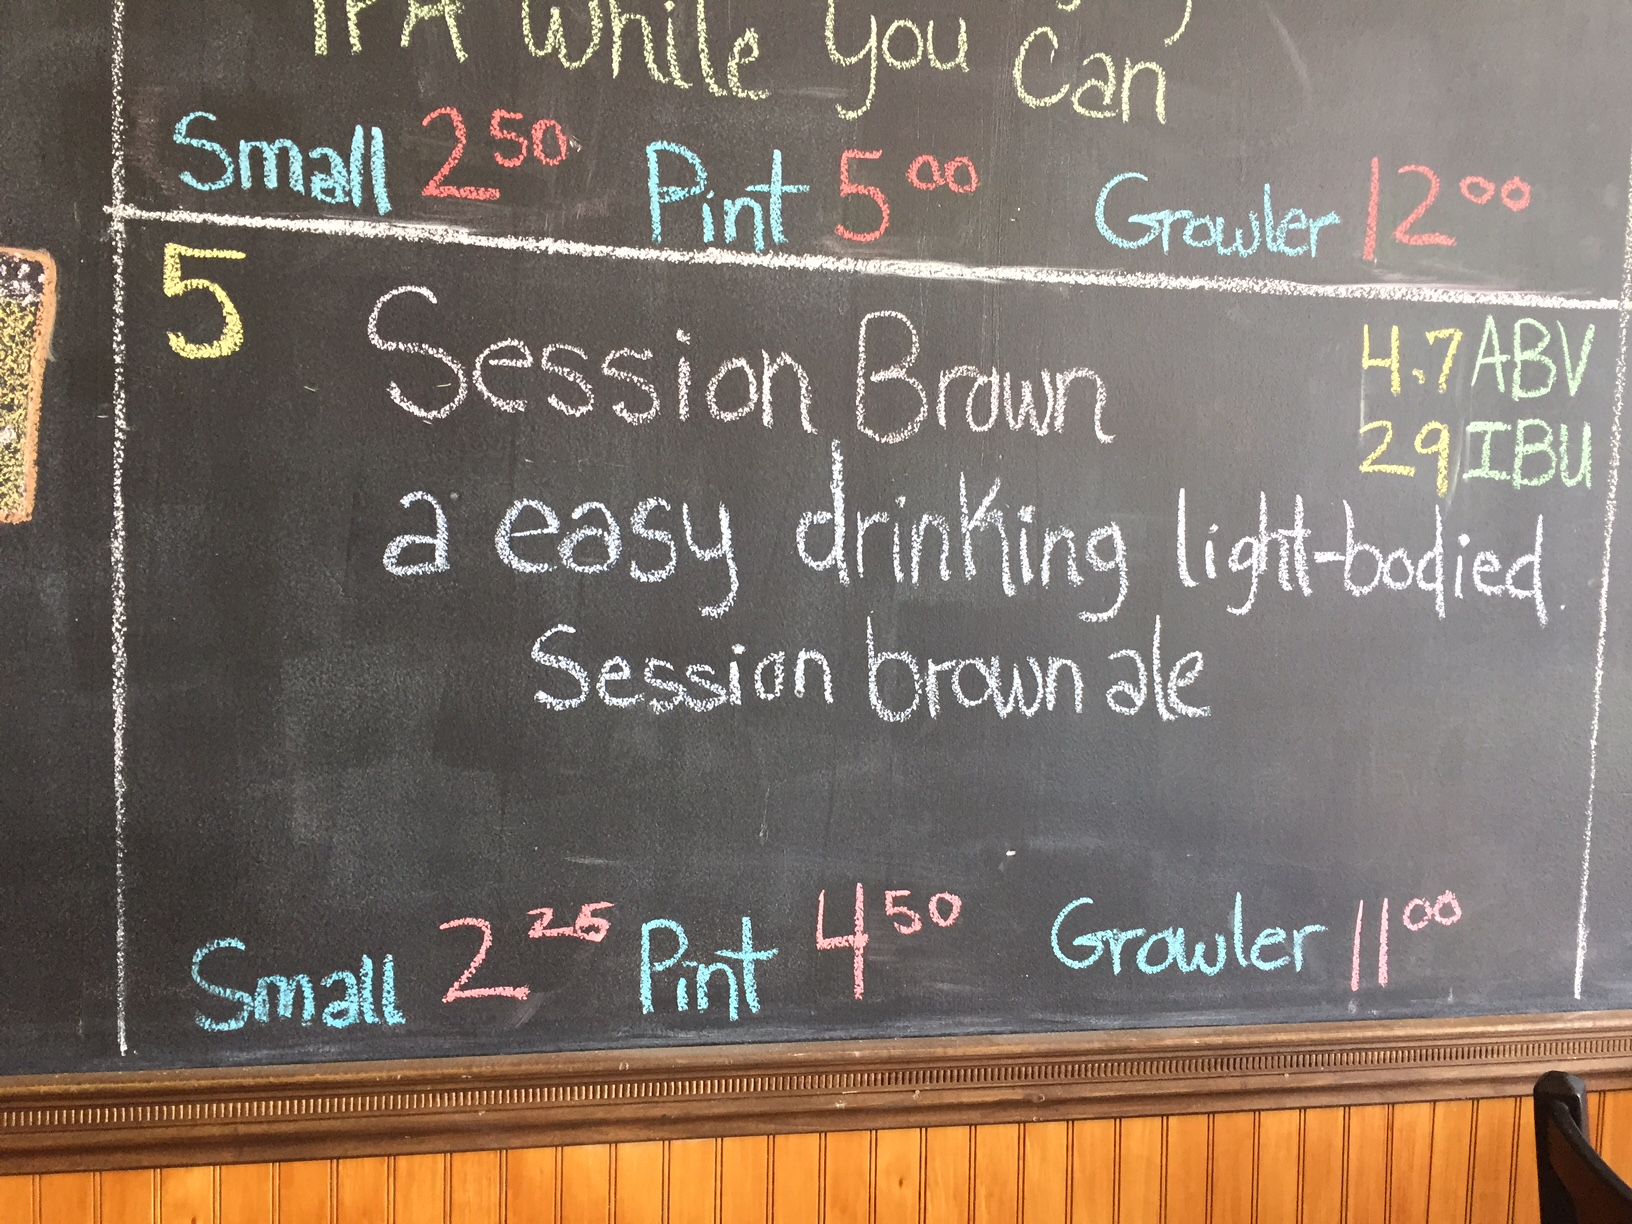 BadWolf Brewing Co Session Brown